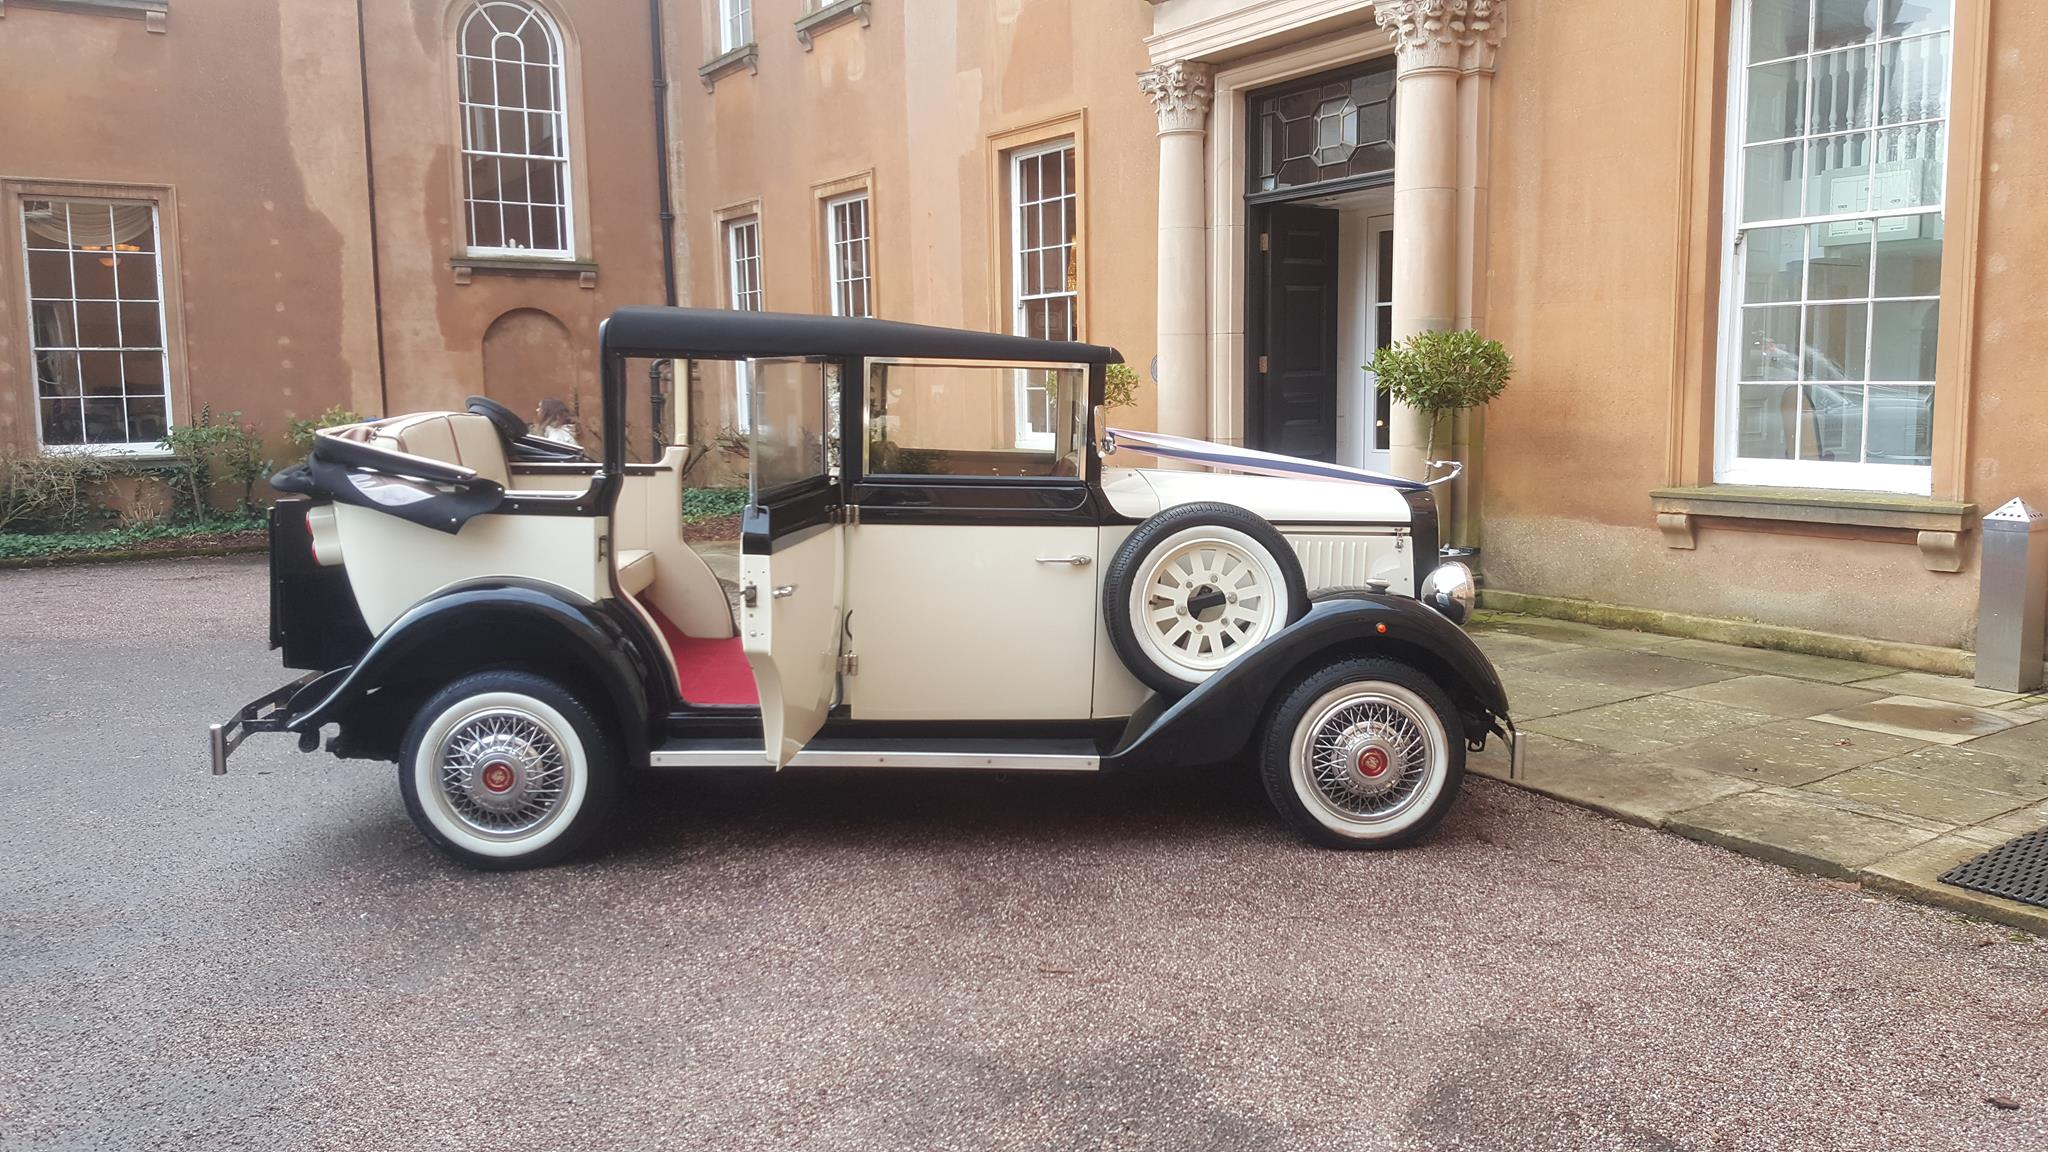 Dudley wedding car hire service